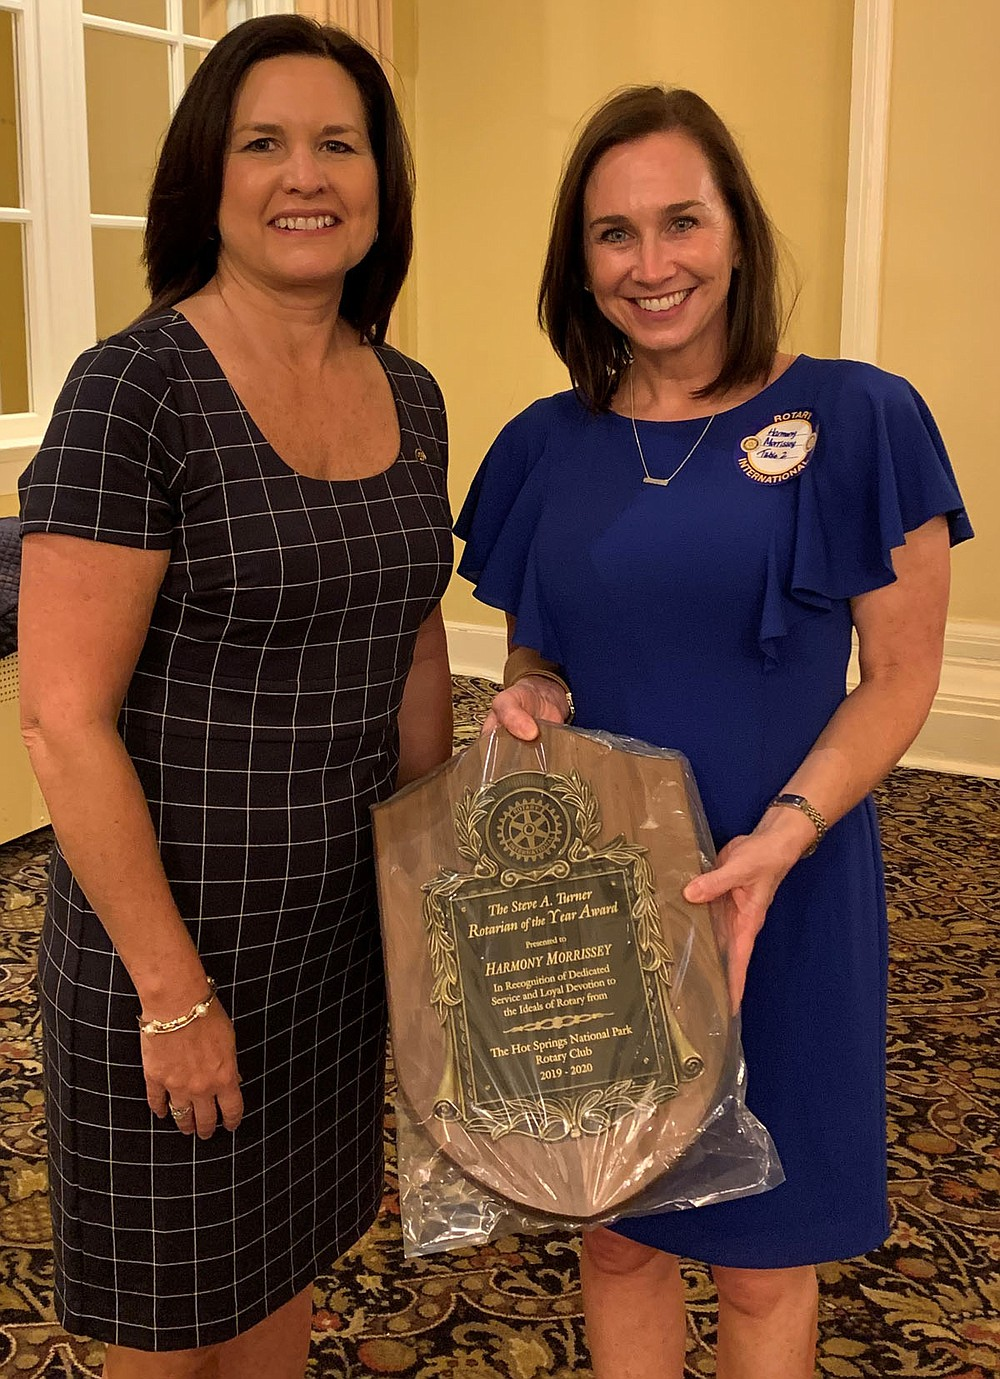 Michelle Ratcliff, left, immediate past president, with Rotarian of the Year Harmony Morrissey. - Submitted photo